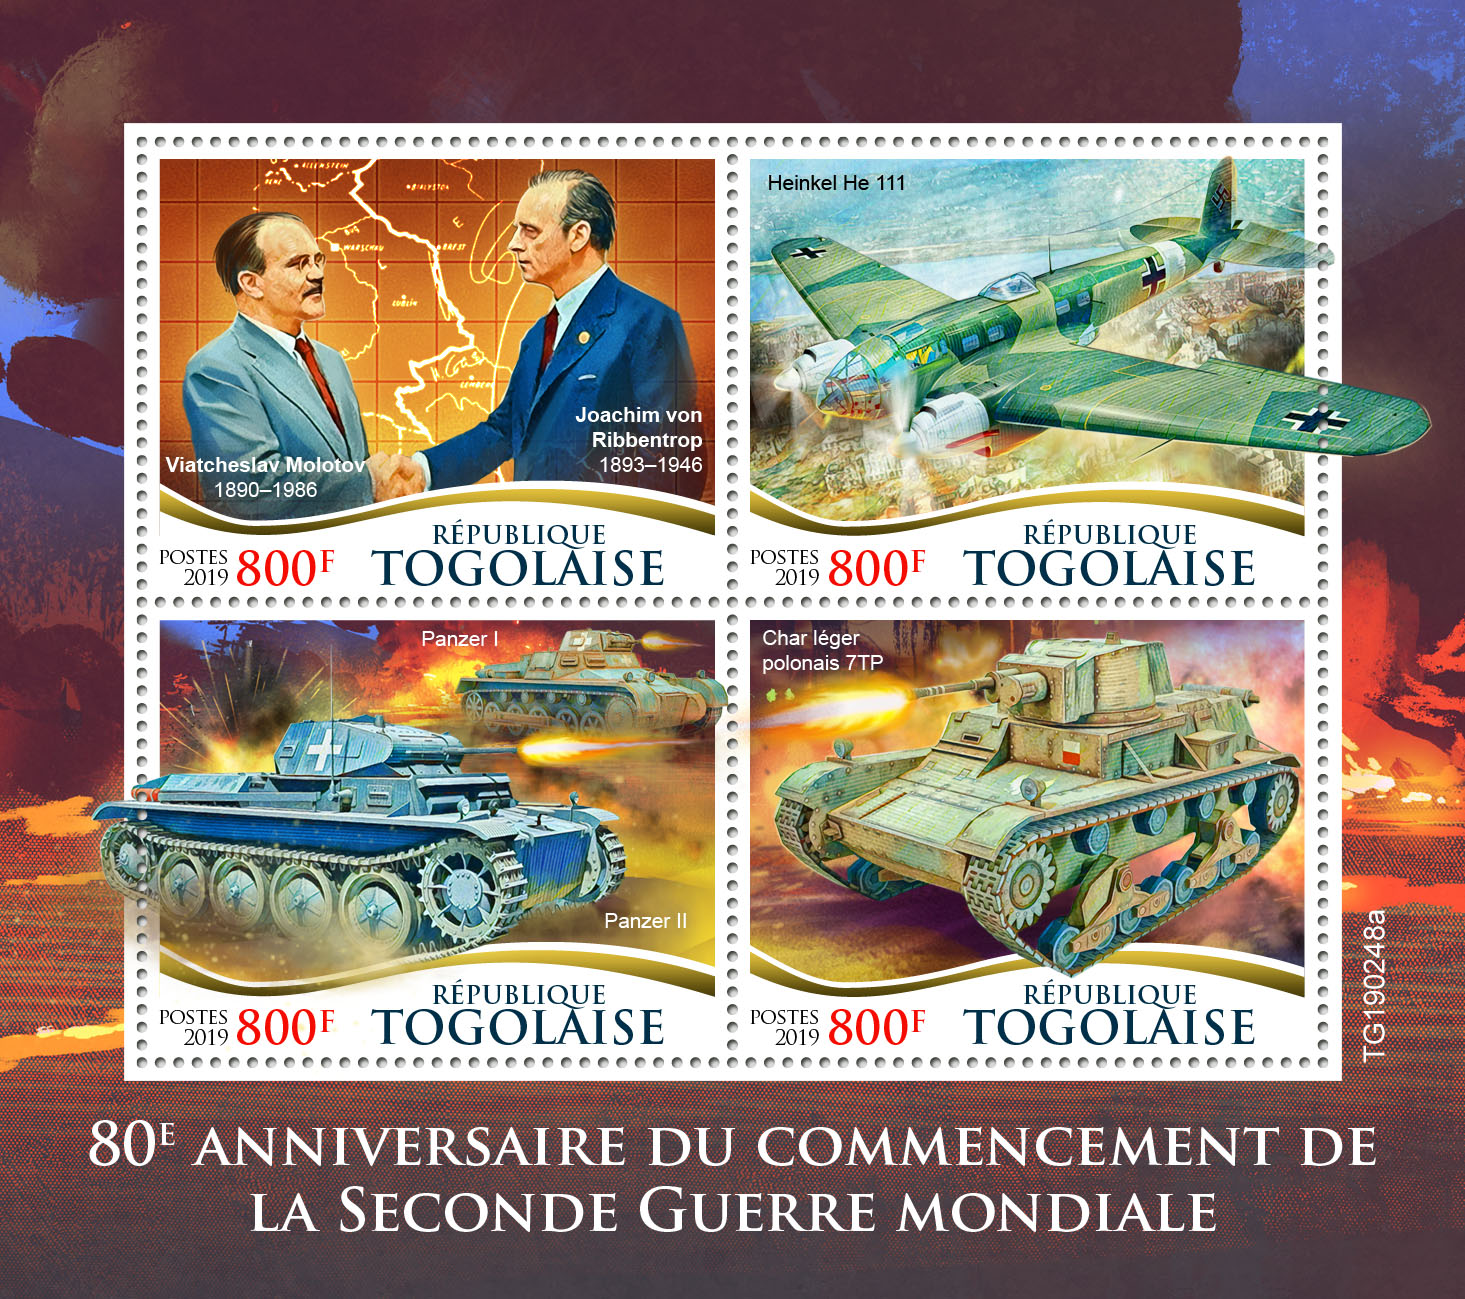 World War II - Issue of Togo postage stamps